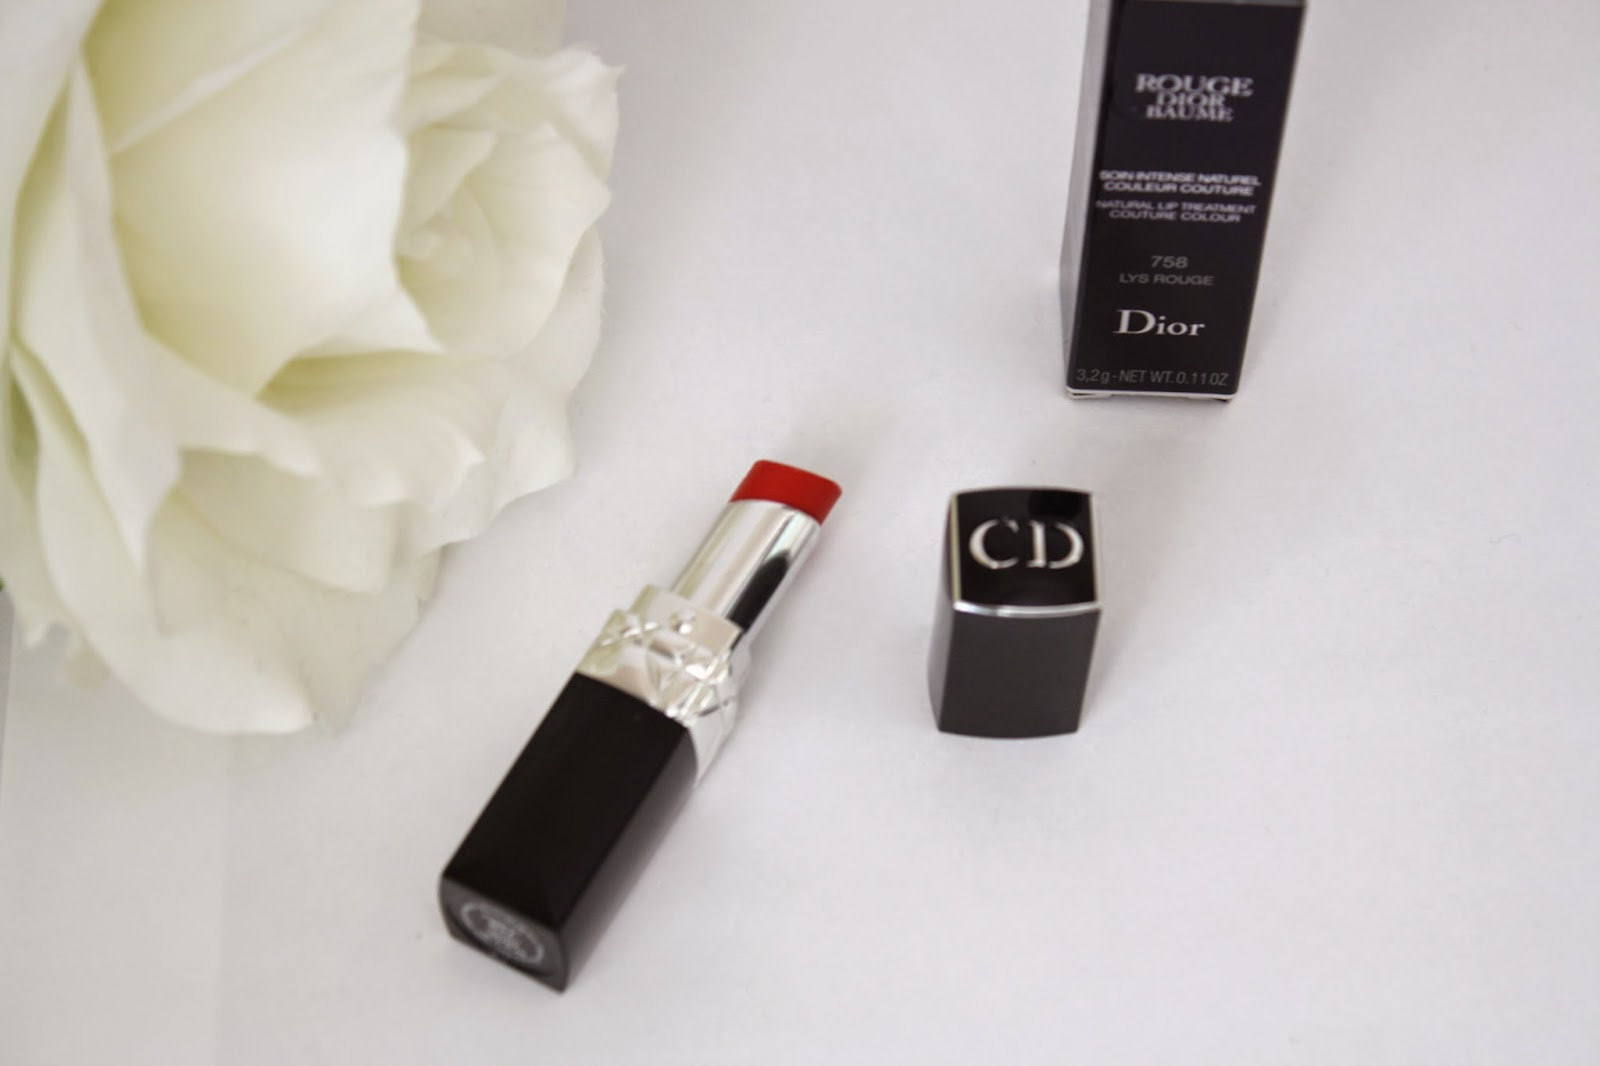 dior, beauty, dior lipstick, dior rouge dior baume, red lipstick, cosmetics, makeup, dior makeup, beauty blogger